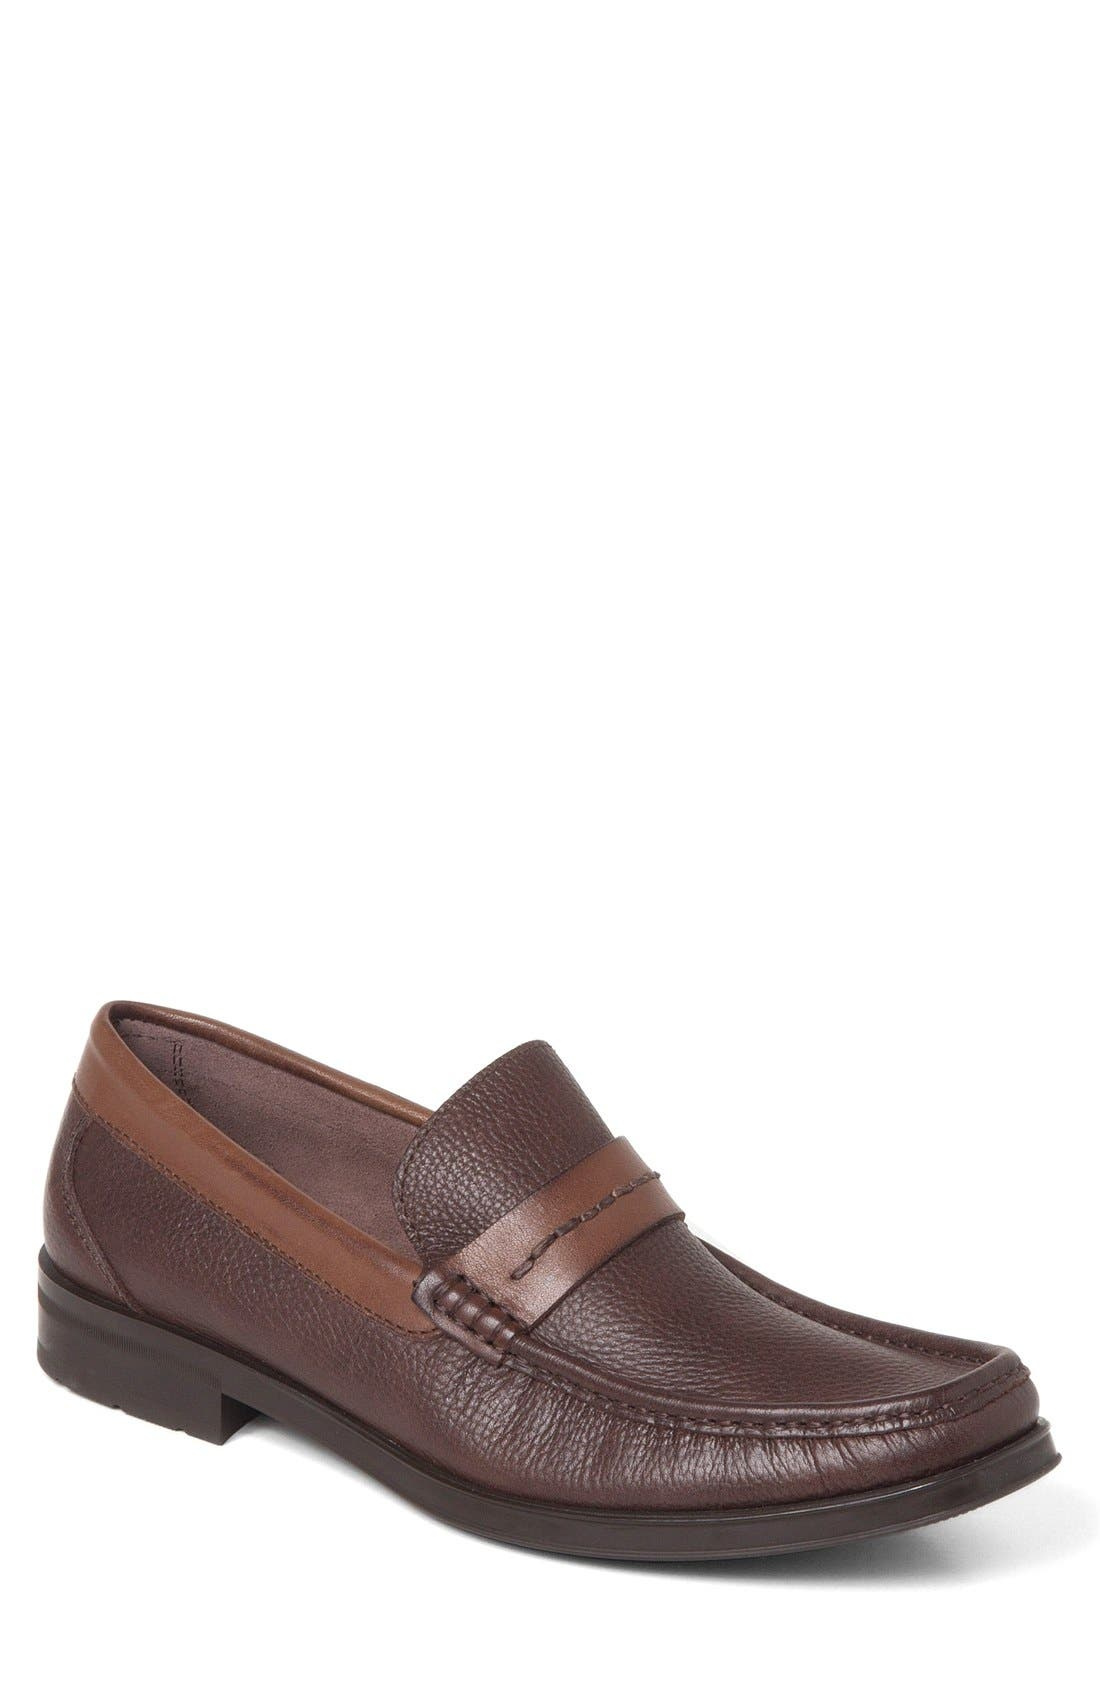 Duero Loafer,                         Main,                         color, Brown Leather